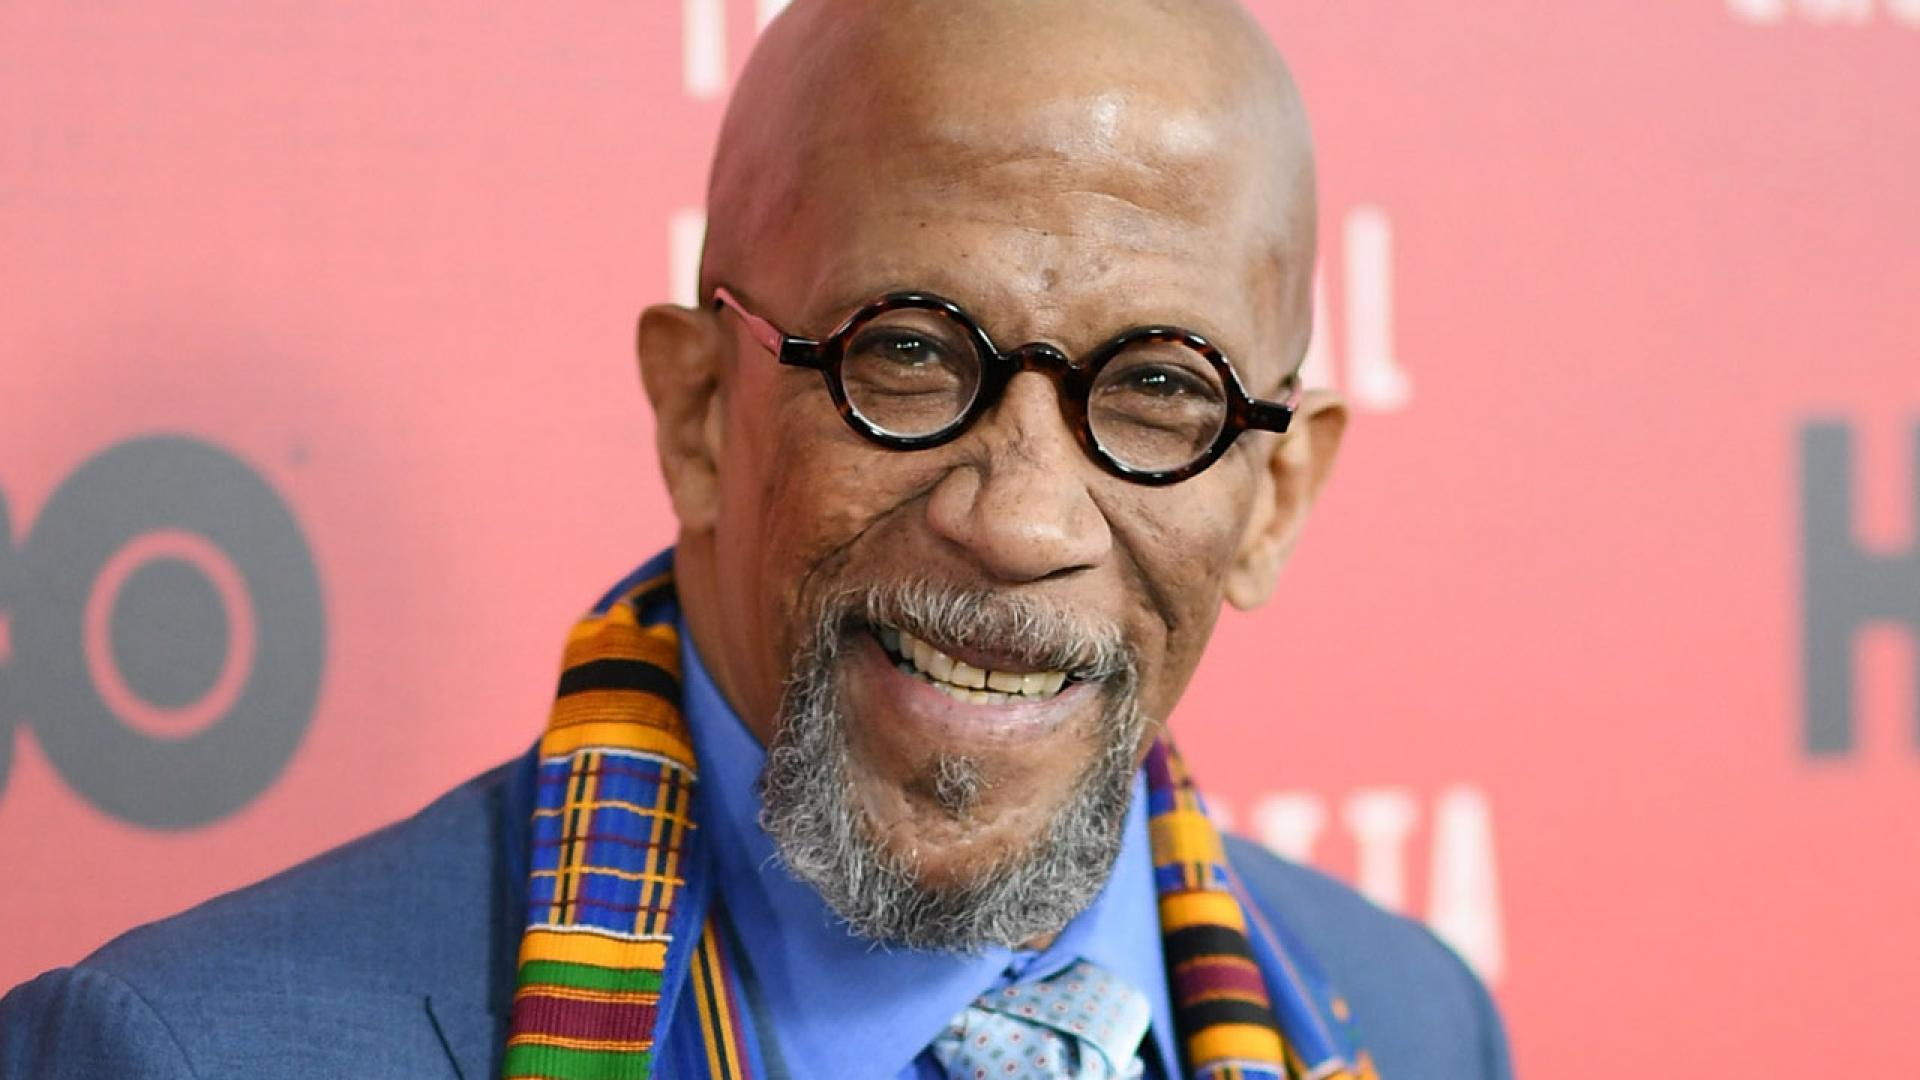 Reg E. Cathey, the deep-voiced actor hailed by critics and his contemporaries as one of the best in the business, has died. He was 59.